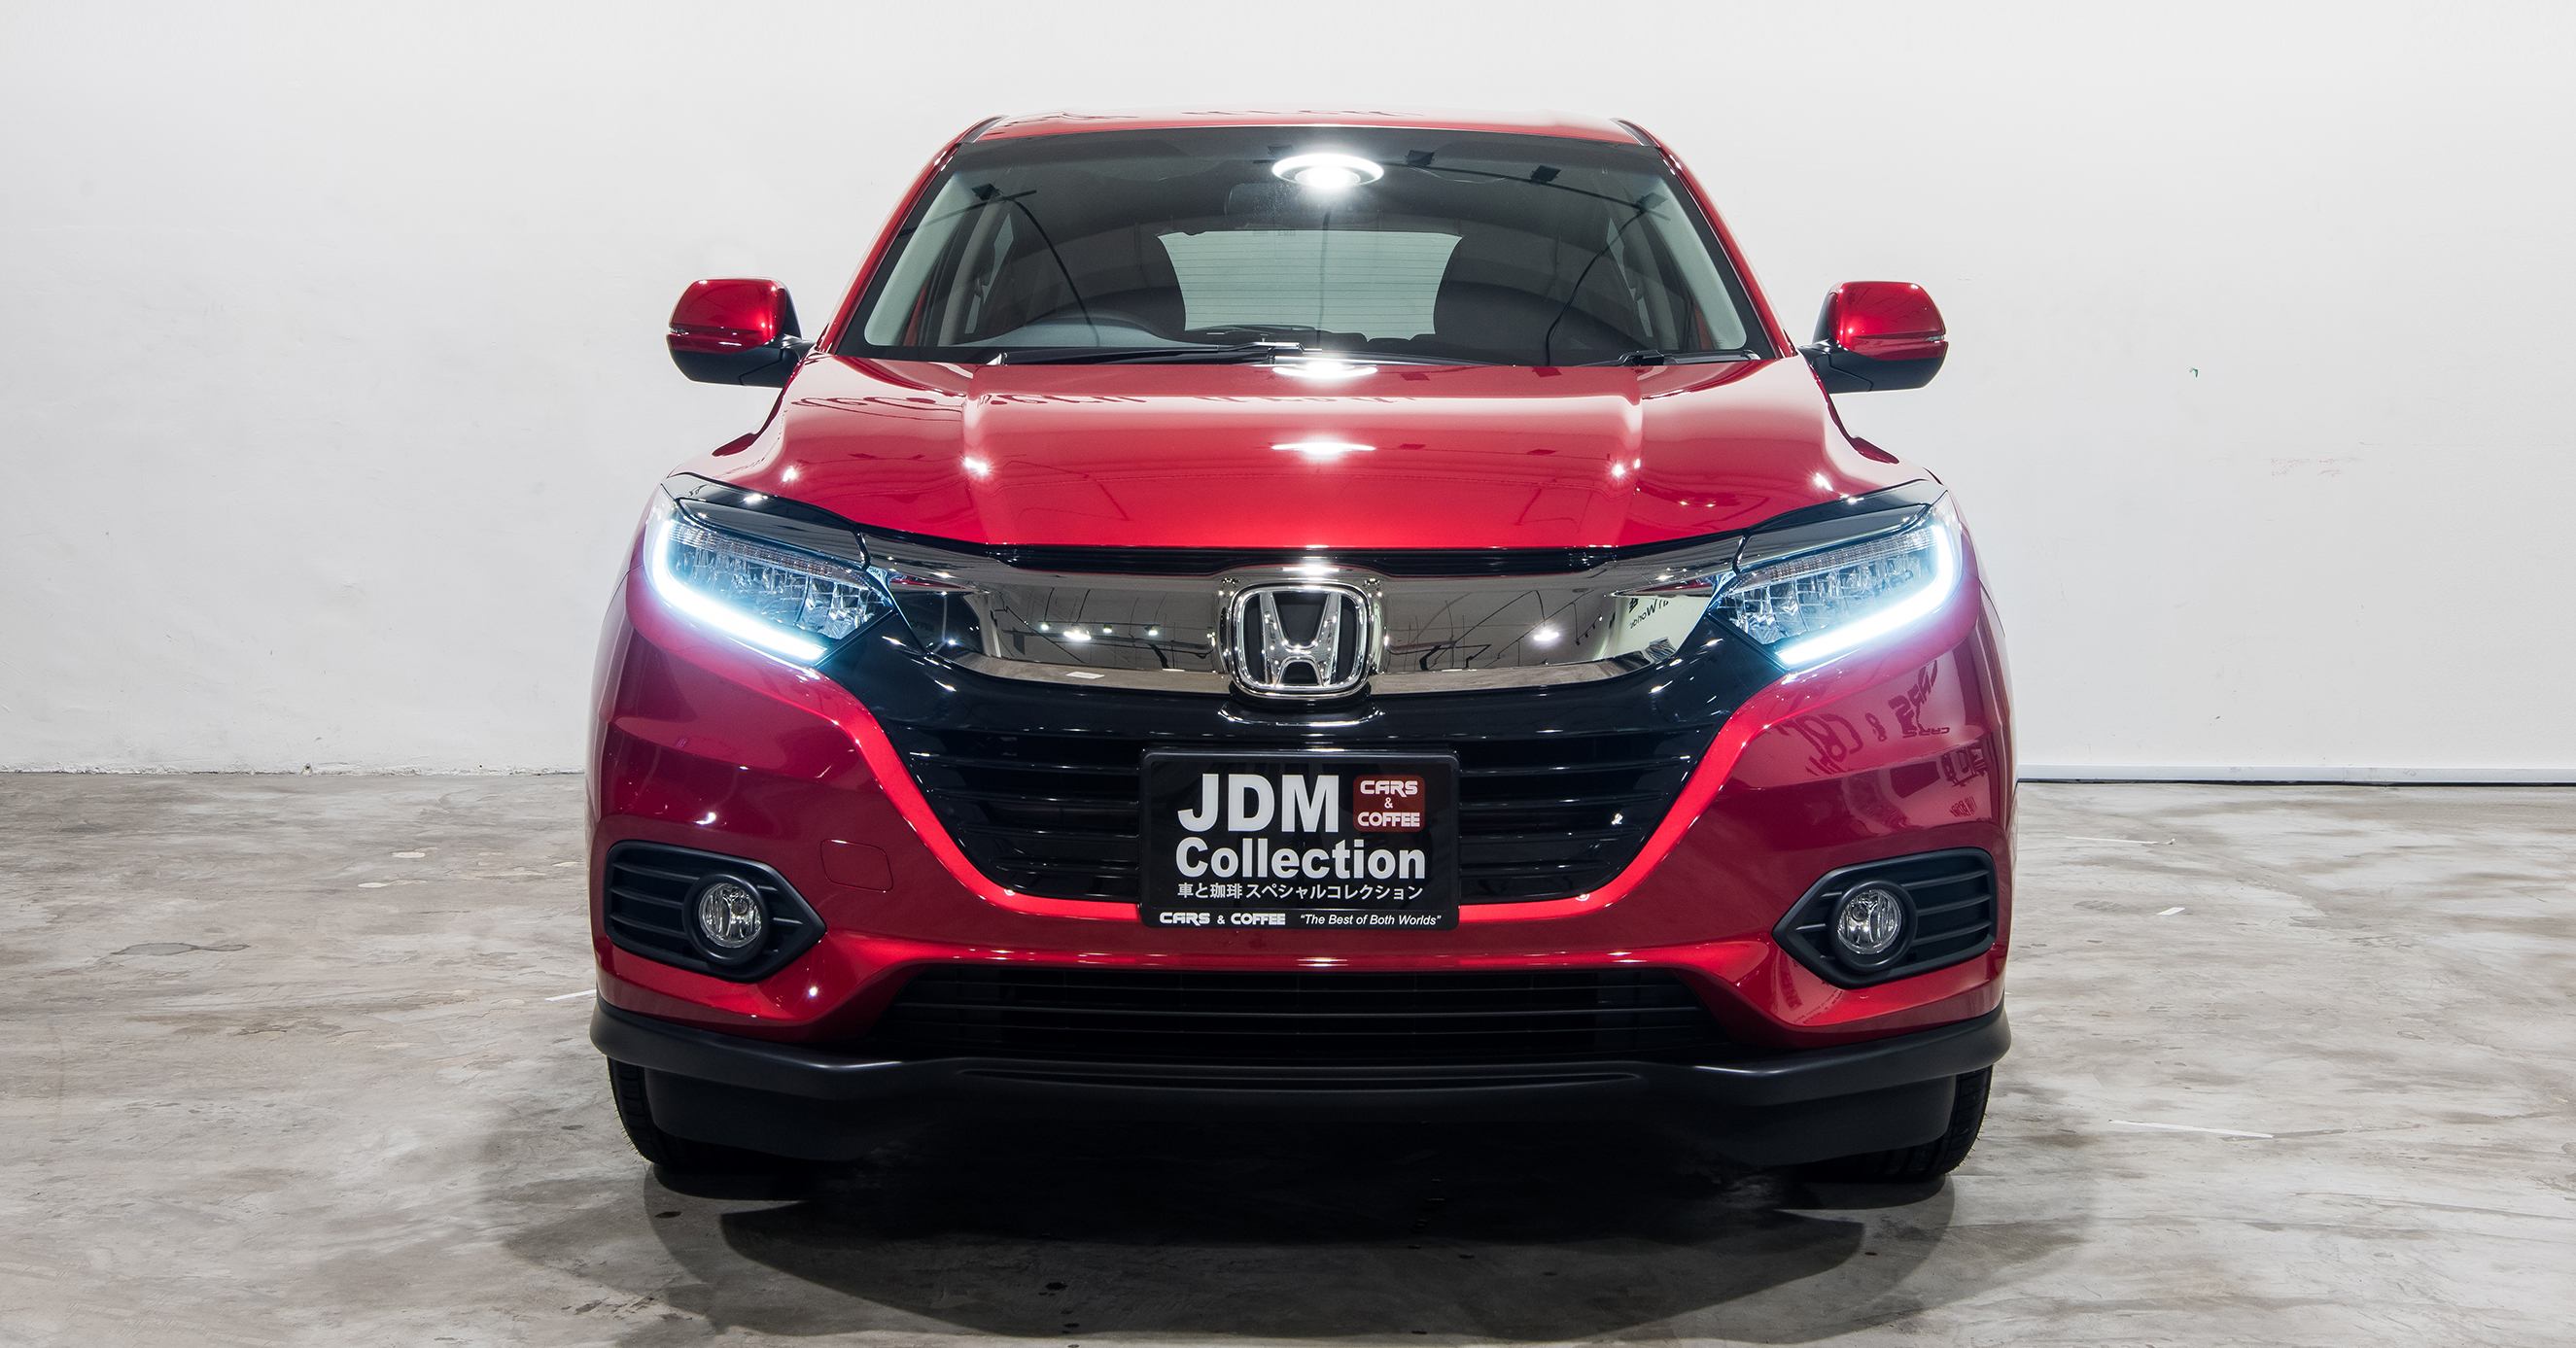 The New Honda Vezel features a more upright upper grille that flows into the new LED headlamps, sharper bumper, new fog light housing and revised lower grille. At the rear, a thin chrome strip connects the tail lamps.